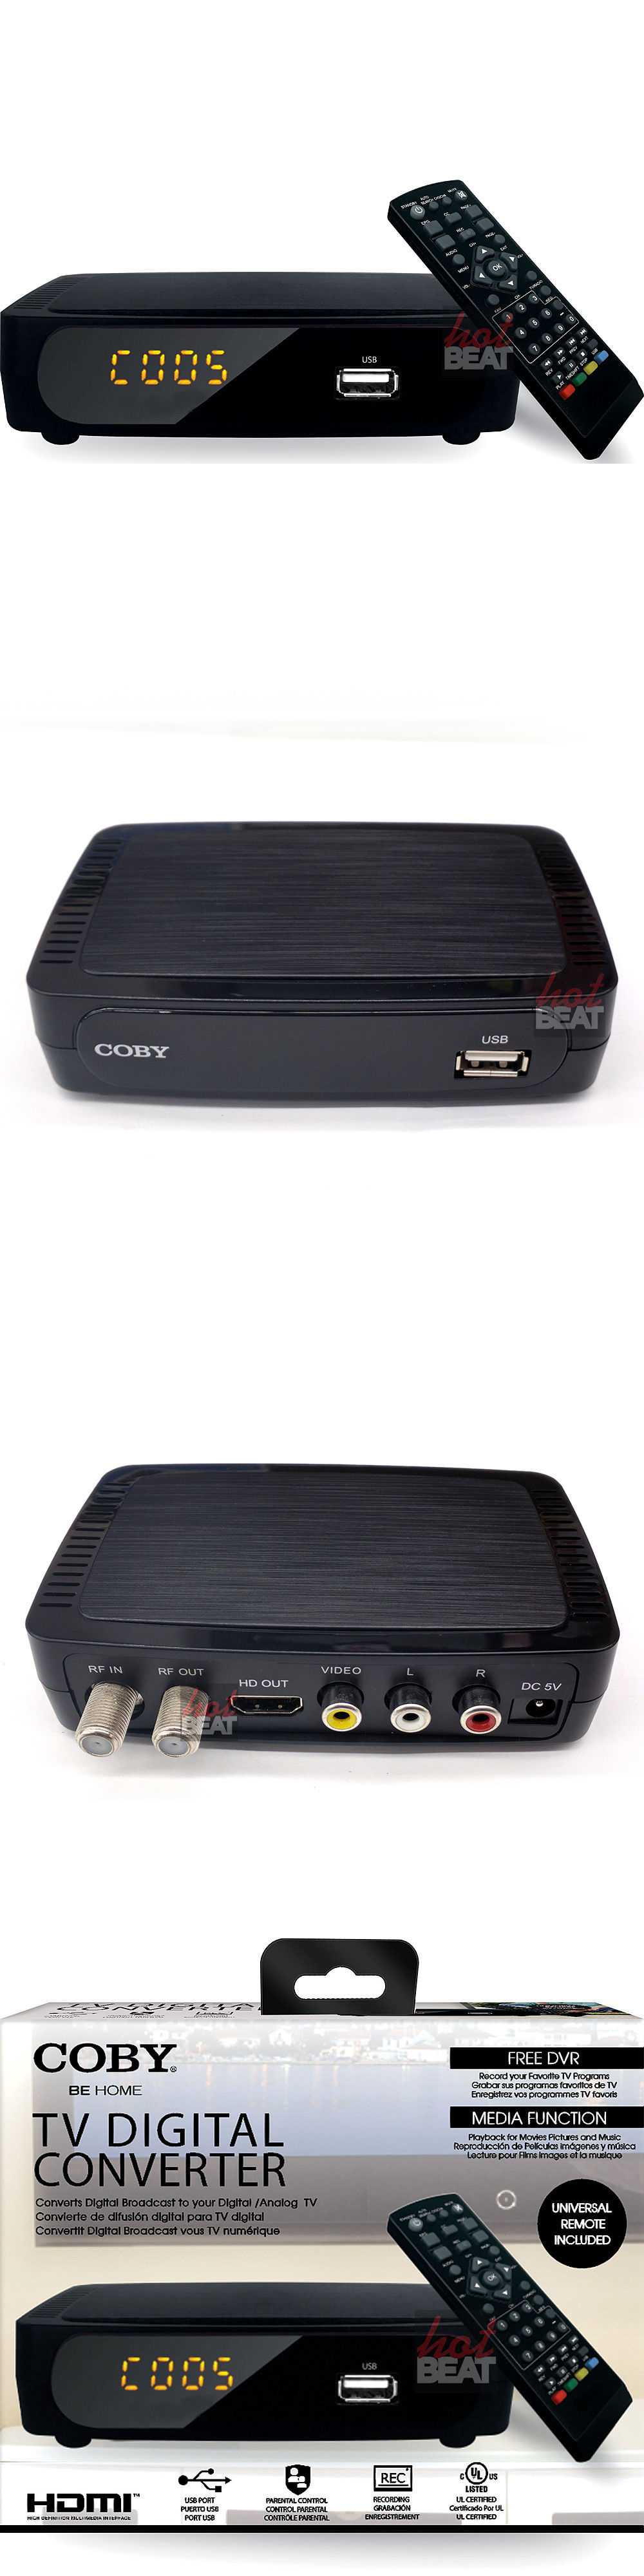 Other TV Video and Audio Accs Coby Cstb-600 Usb Multimedia Player Digital Converter  sc 1 st  Pinterest & Other TV Video and Audio Accs: Coby Cstb-600 Usb Multimedia Player ... Aboutintivar.Com